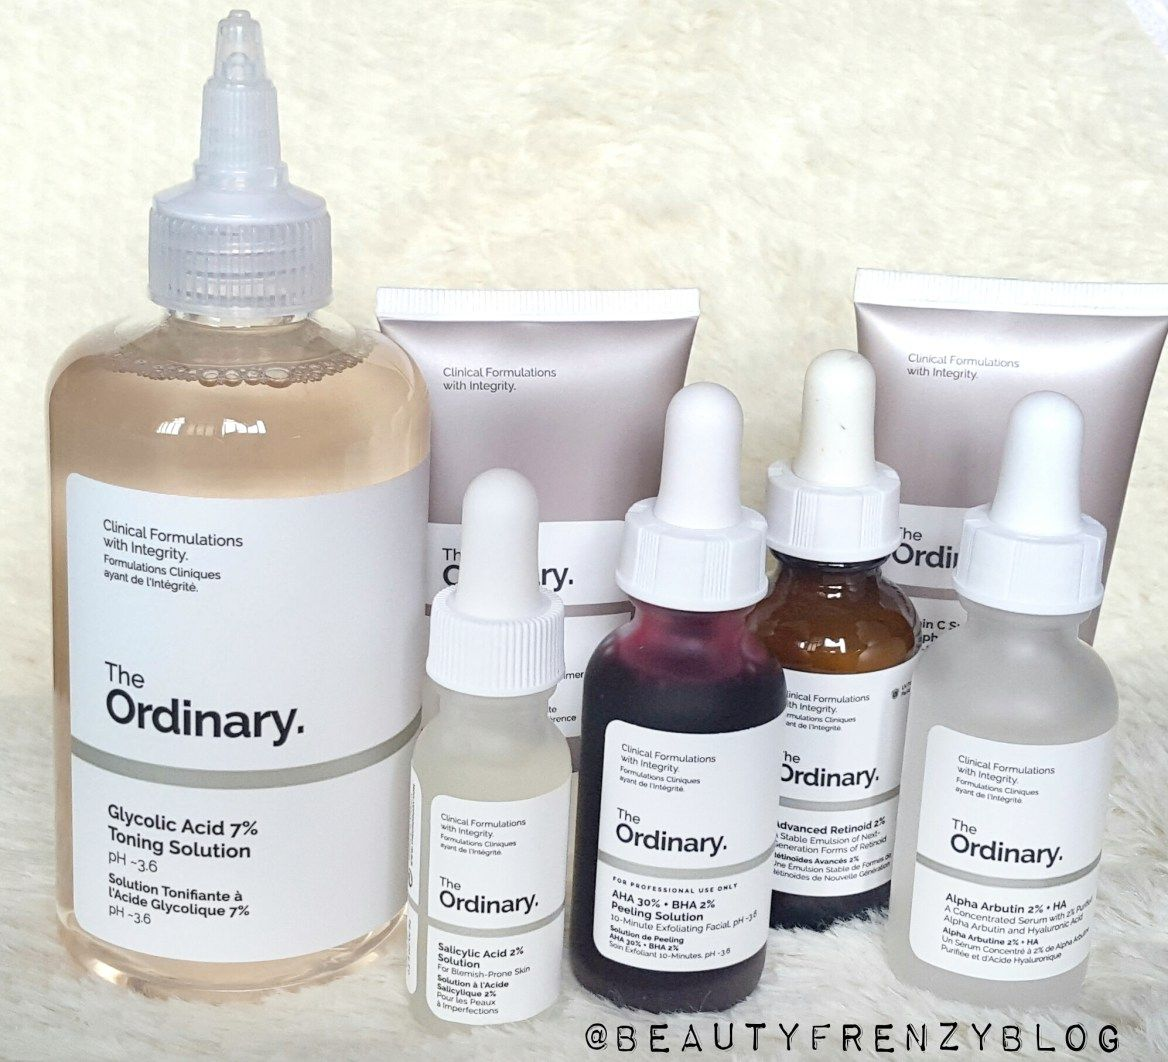 Best Products From The Ordinary Best And Worst Products With Mini Reviews And Photos The Ordinary Haul The Ordinary Products The Ordinary Skincare Skin Care